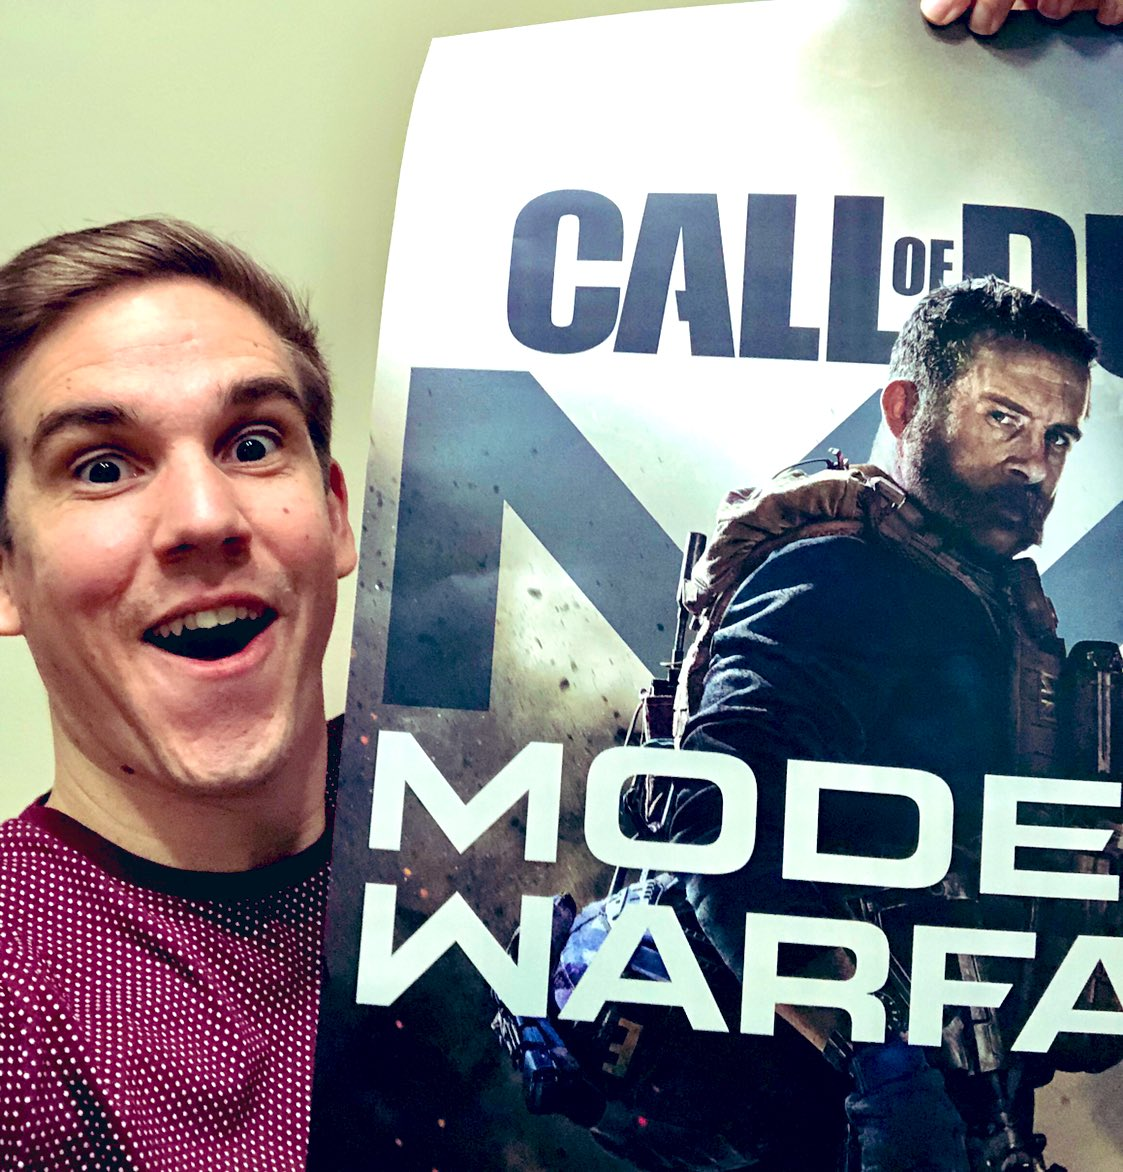 BIG NEWS PEOPLE!!!At 10am PST tomorrow I have the pleasure of showing off GUNFIGHT a new 2v2 mode in CoD MW multiplayer!Awesome CoD announcementsNew 2v2 mode for the first timeYOU CANNOT MISS IT http://twitch.tv/teepee #COD_PARTNER